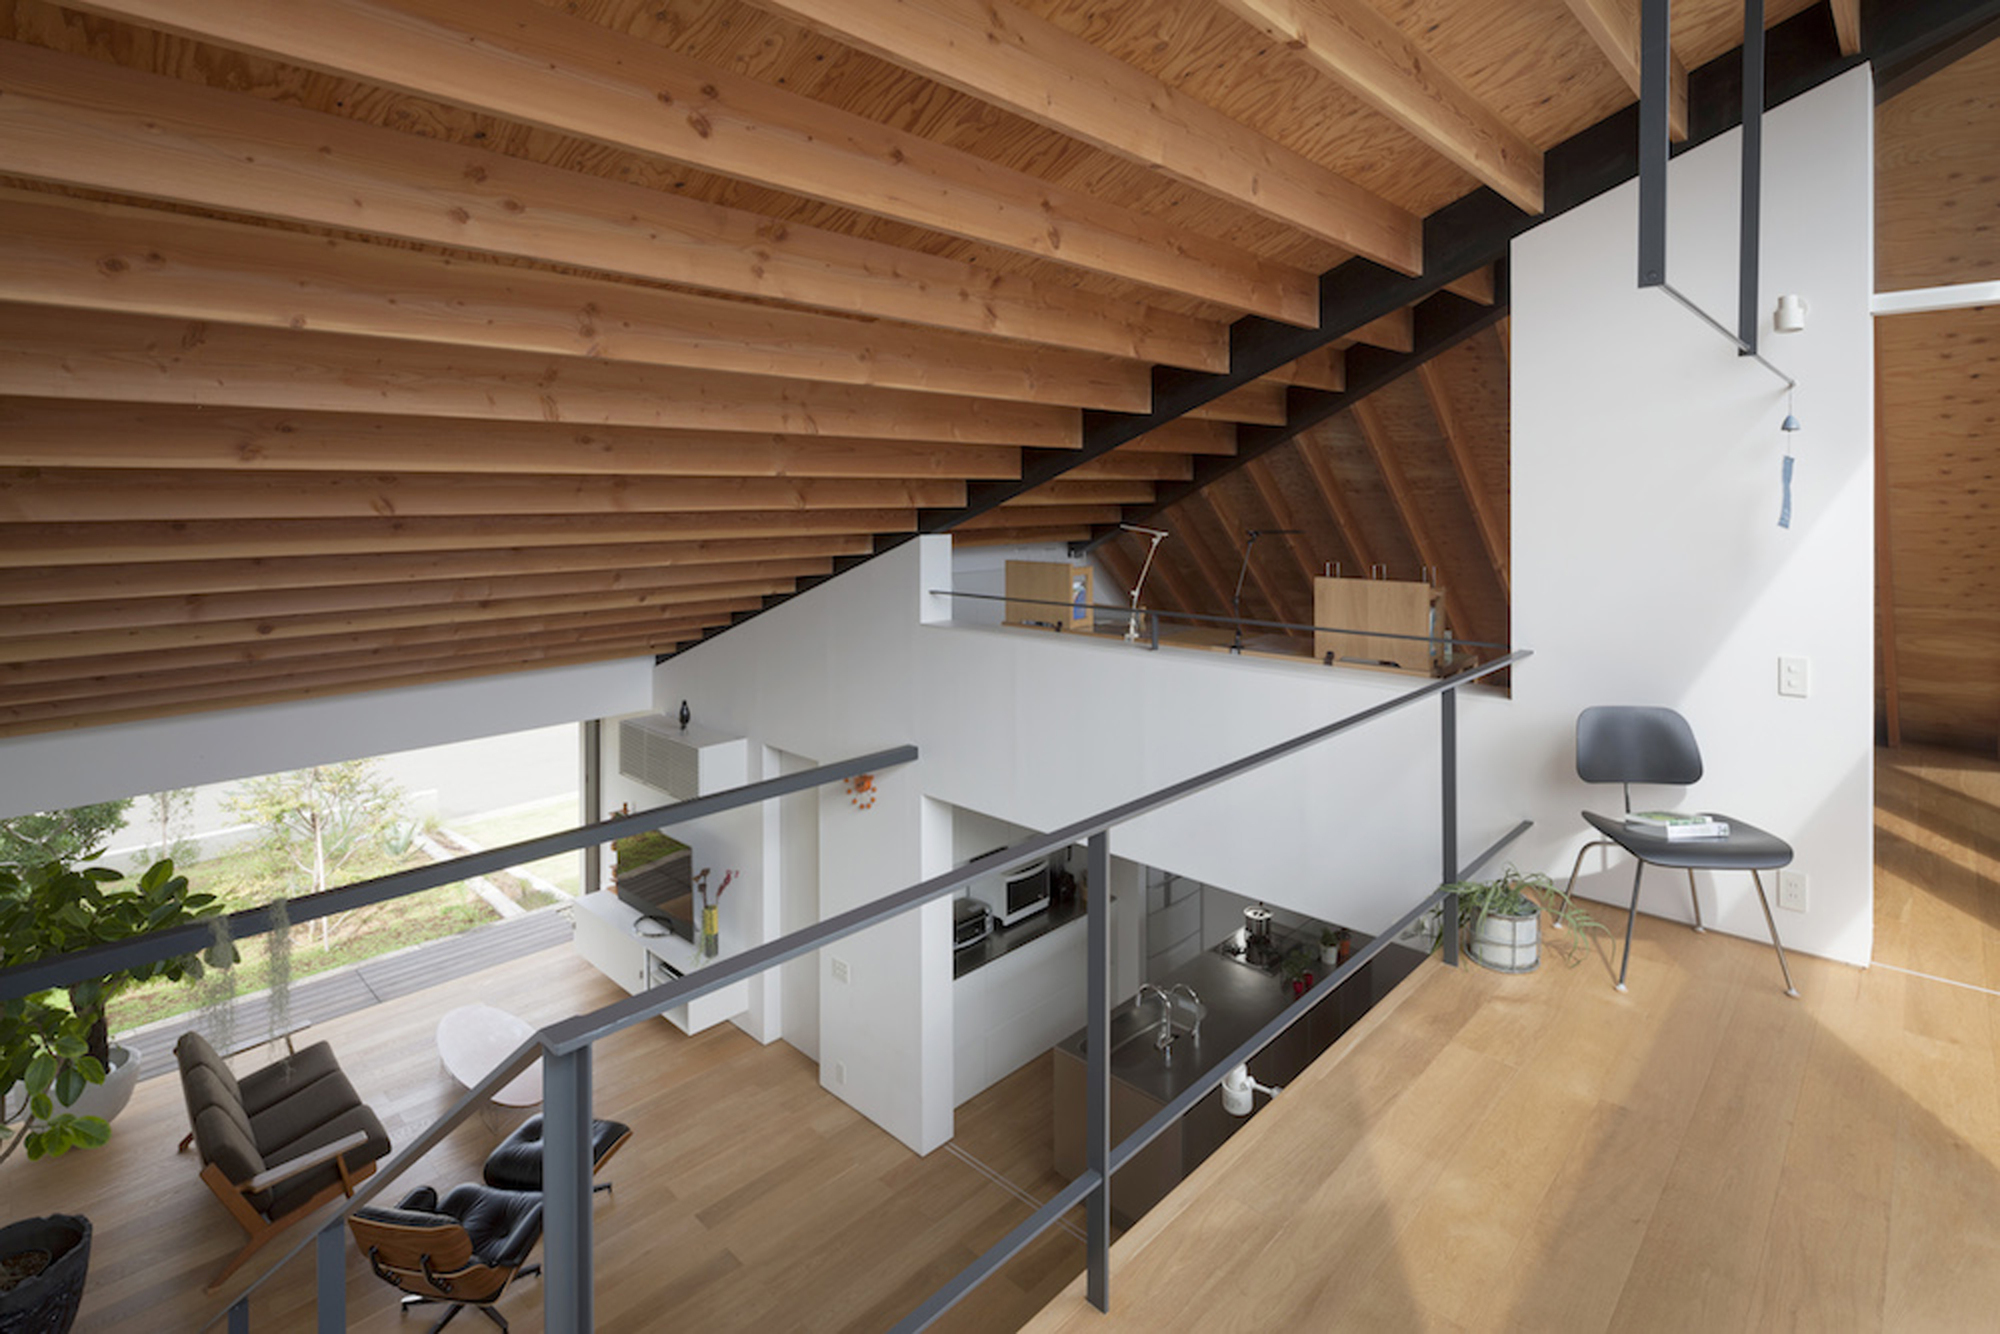 52eb1fdbe8e44e981a0000a5_house-with-a-large-hipped-roof-naoi-architecture-design-office_housewithlhr_34